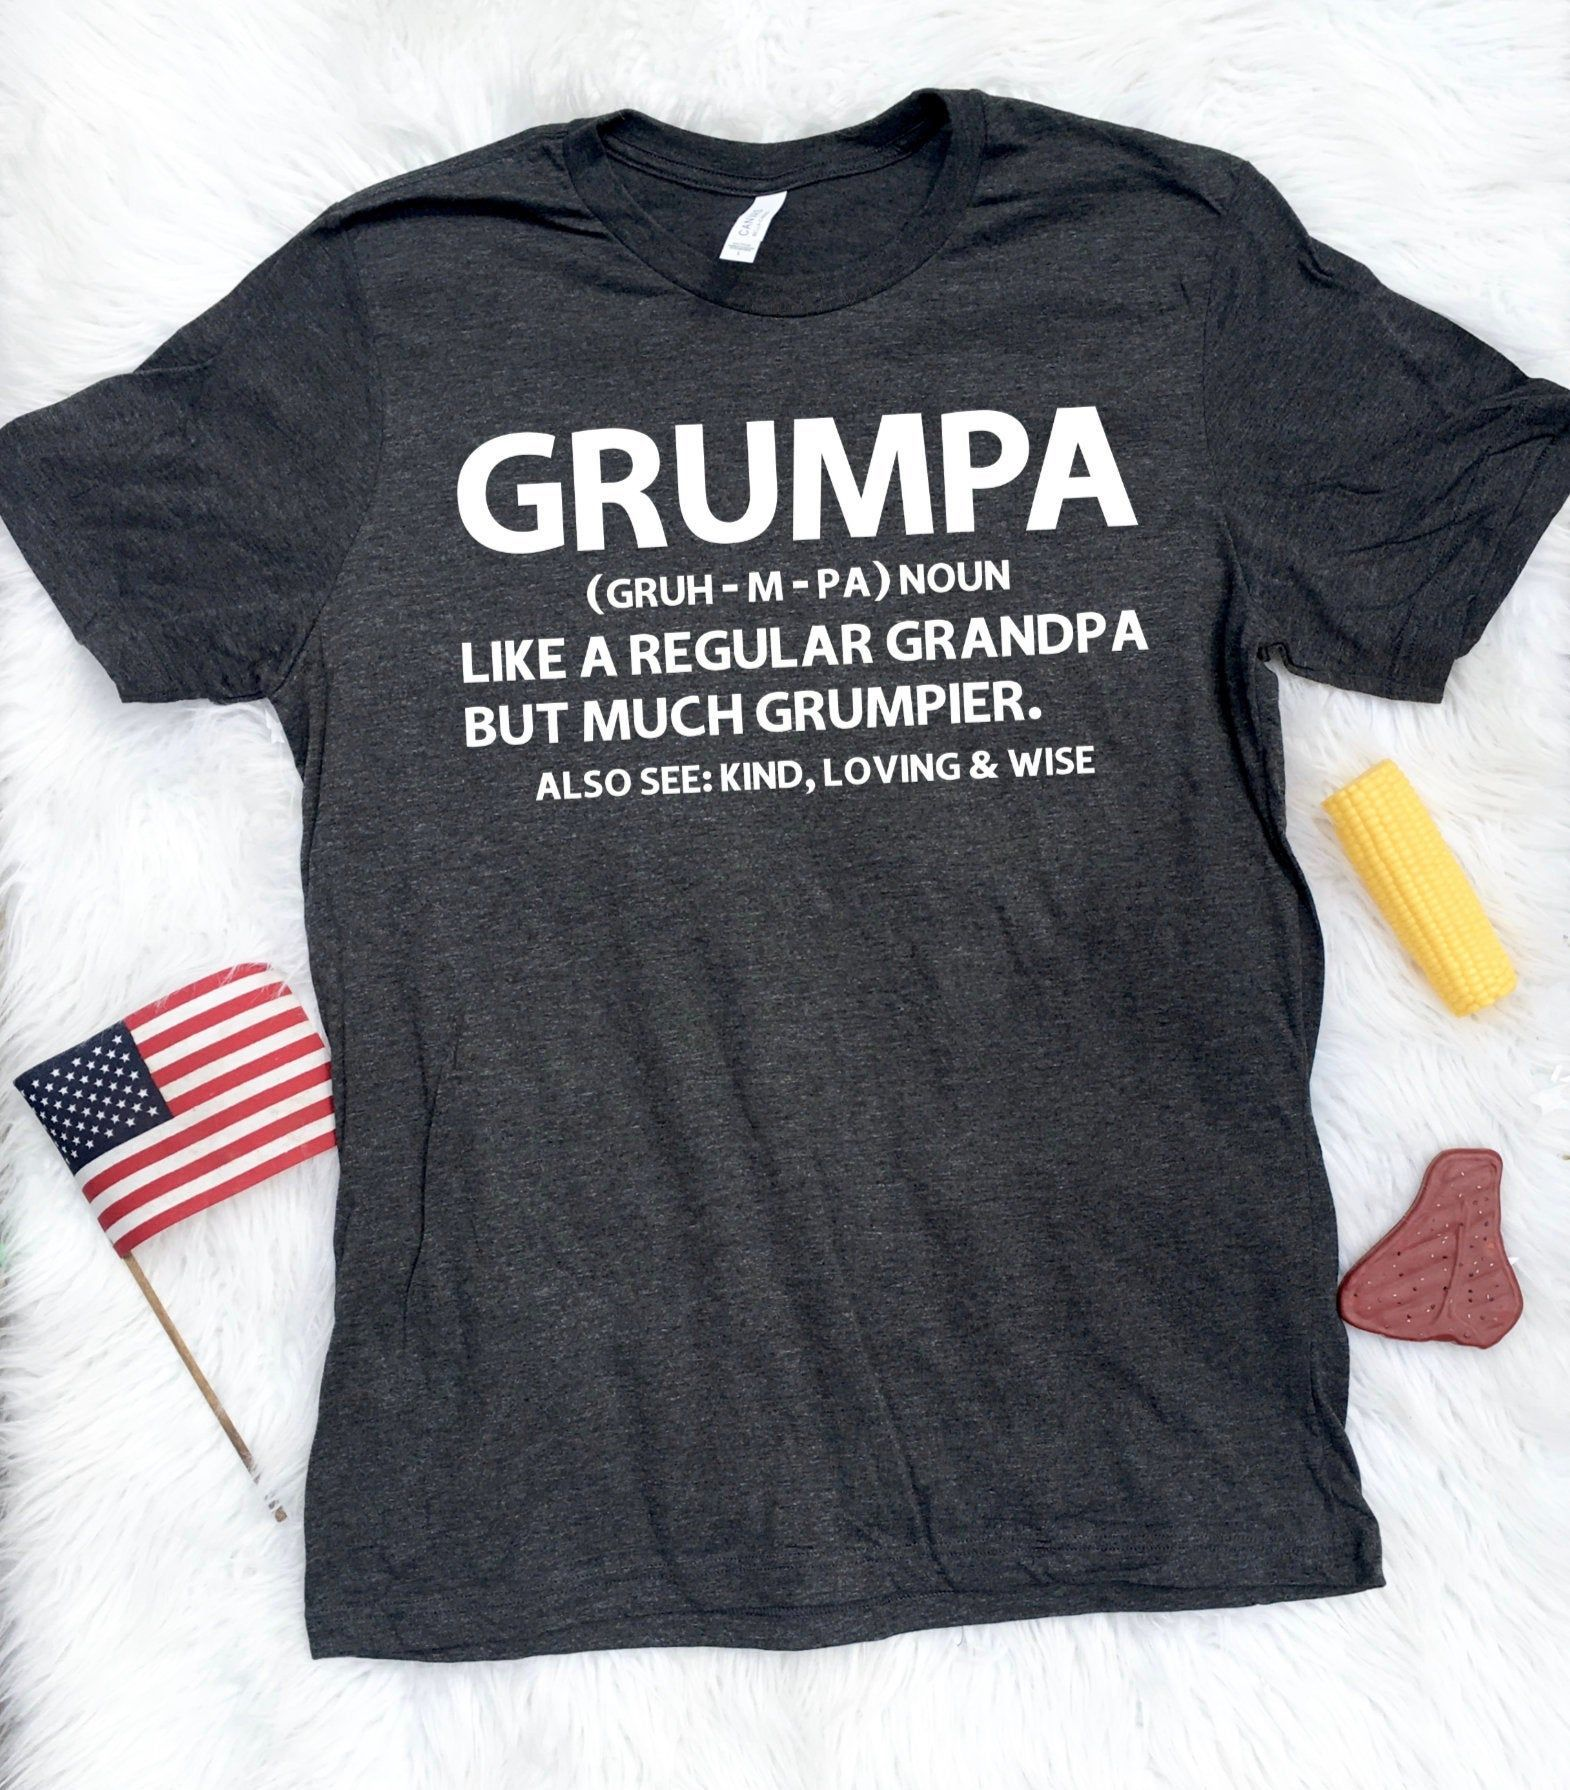 Grumpa Like A Regular Grandpa Only Grumpier T-Shirt, Best Papa Shirt, Grumpa Definition TShirt, Christmas Grandpa, Gift for Grandpa, Crabby #grandpagifts